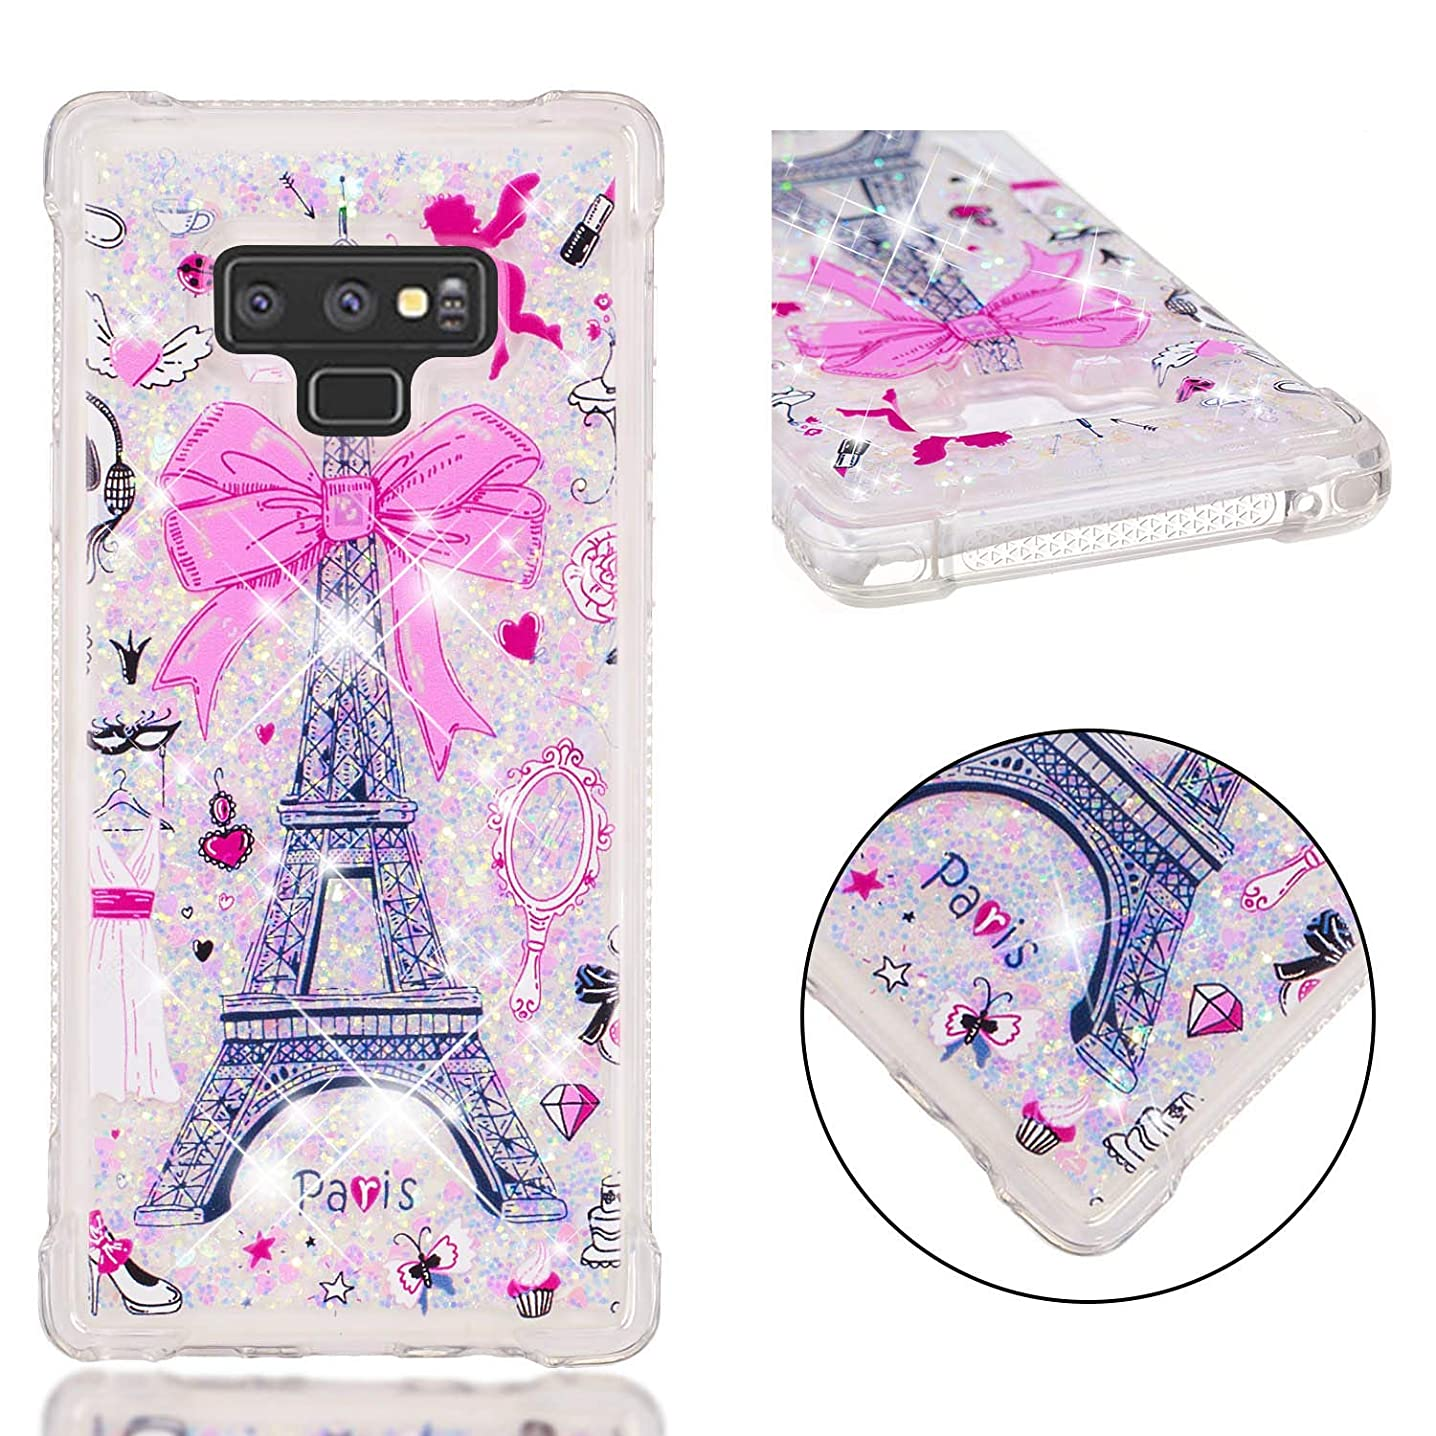 Galaxy Note 9 Case, ZERMU Shockproof Elegant Pattern Luxury Bling Quicksand Flowing Floating Glitter Durable Waterfall Fusion Moving Liquid Sparkling TPU Bumper Case for Galaxy Note 9 6.4